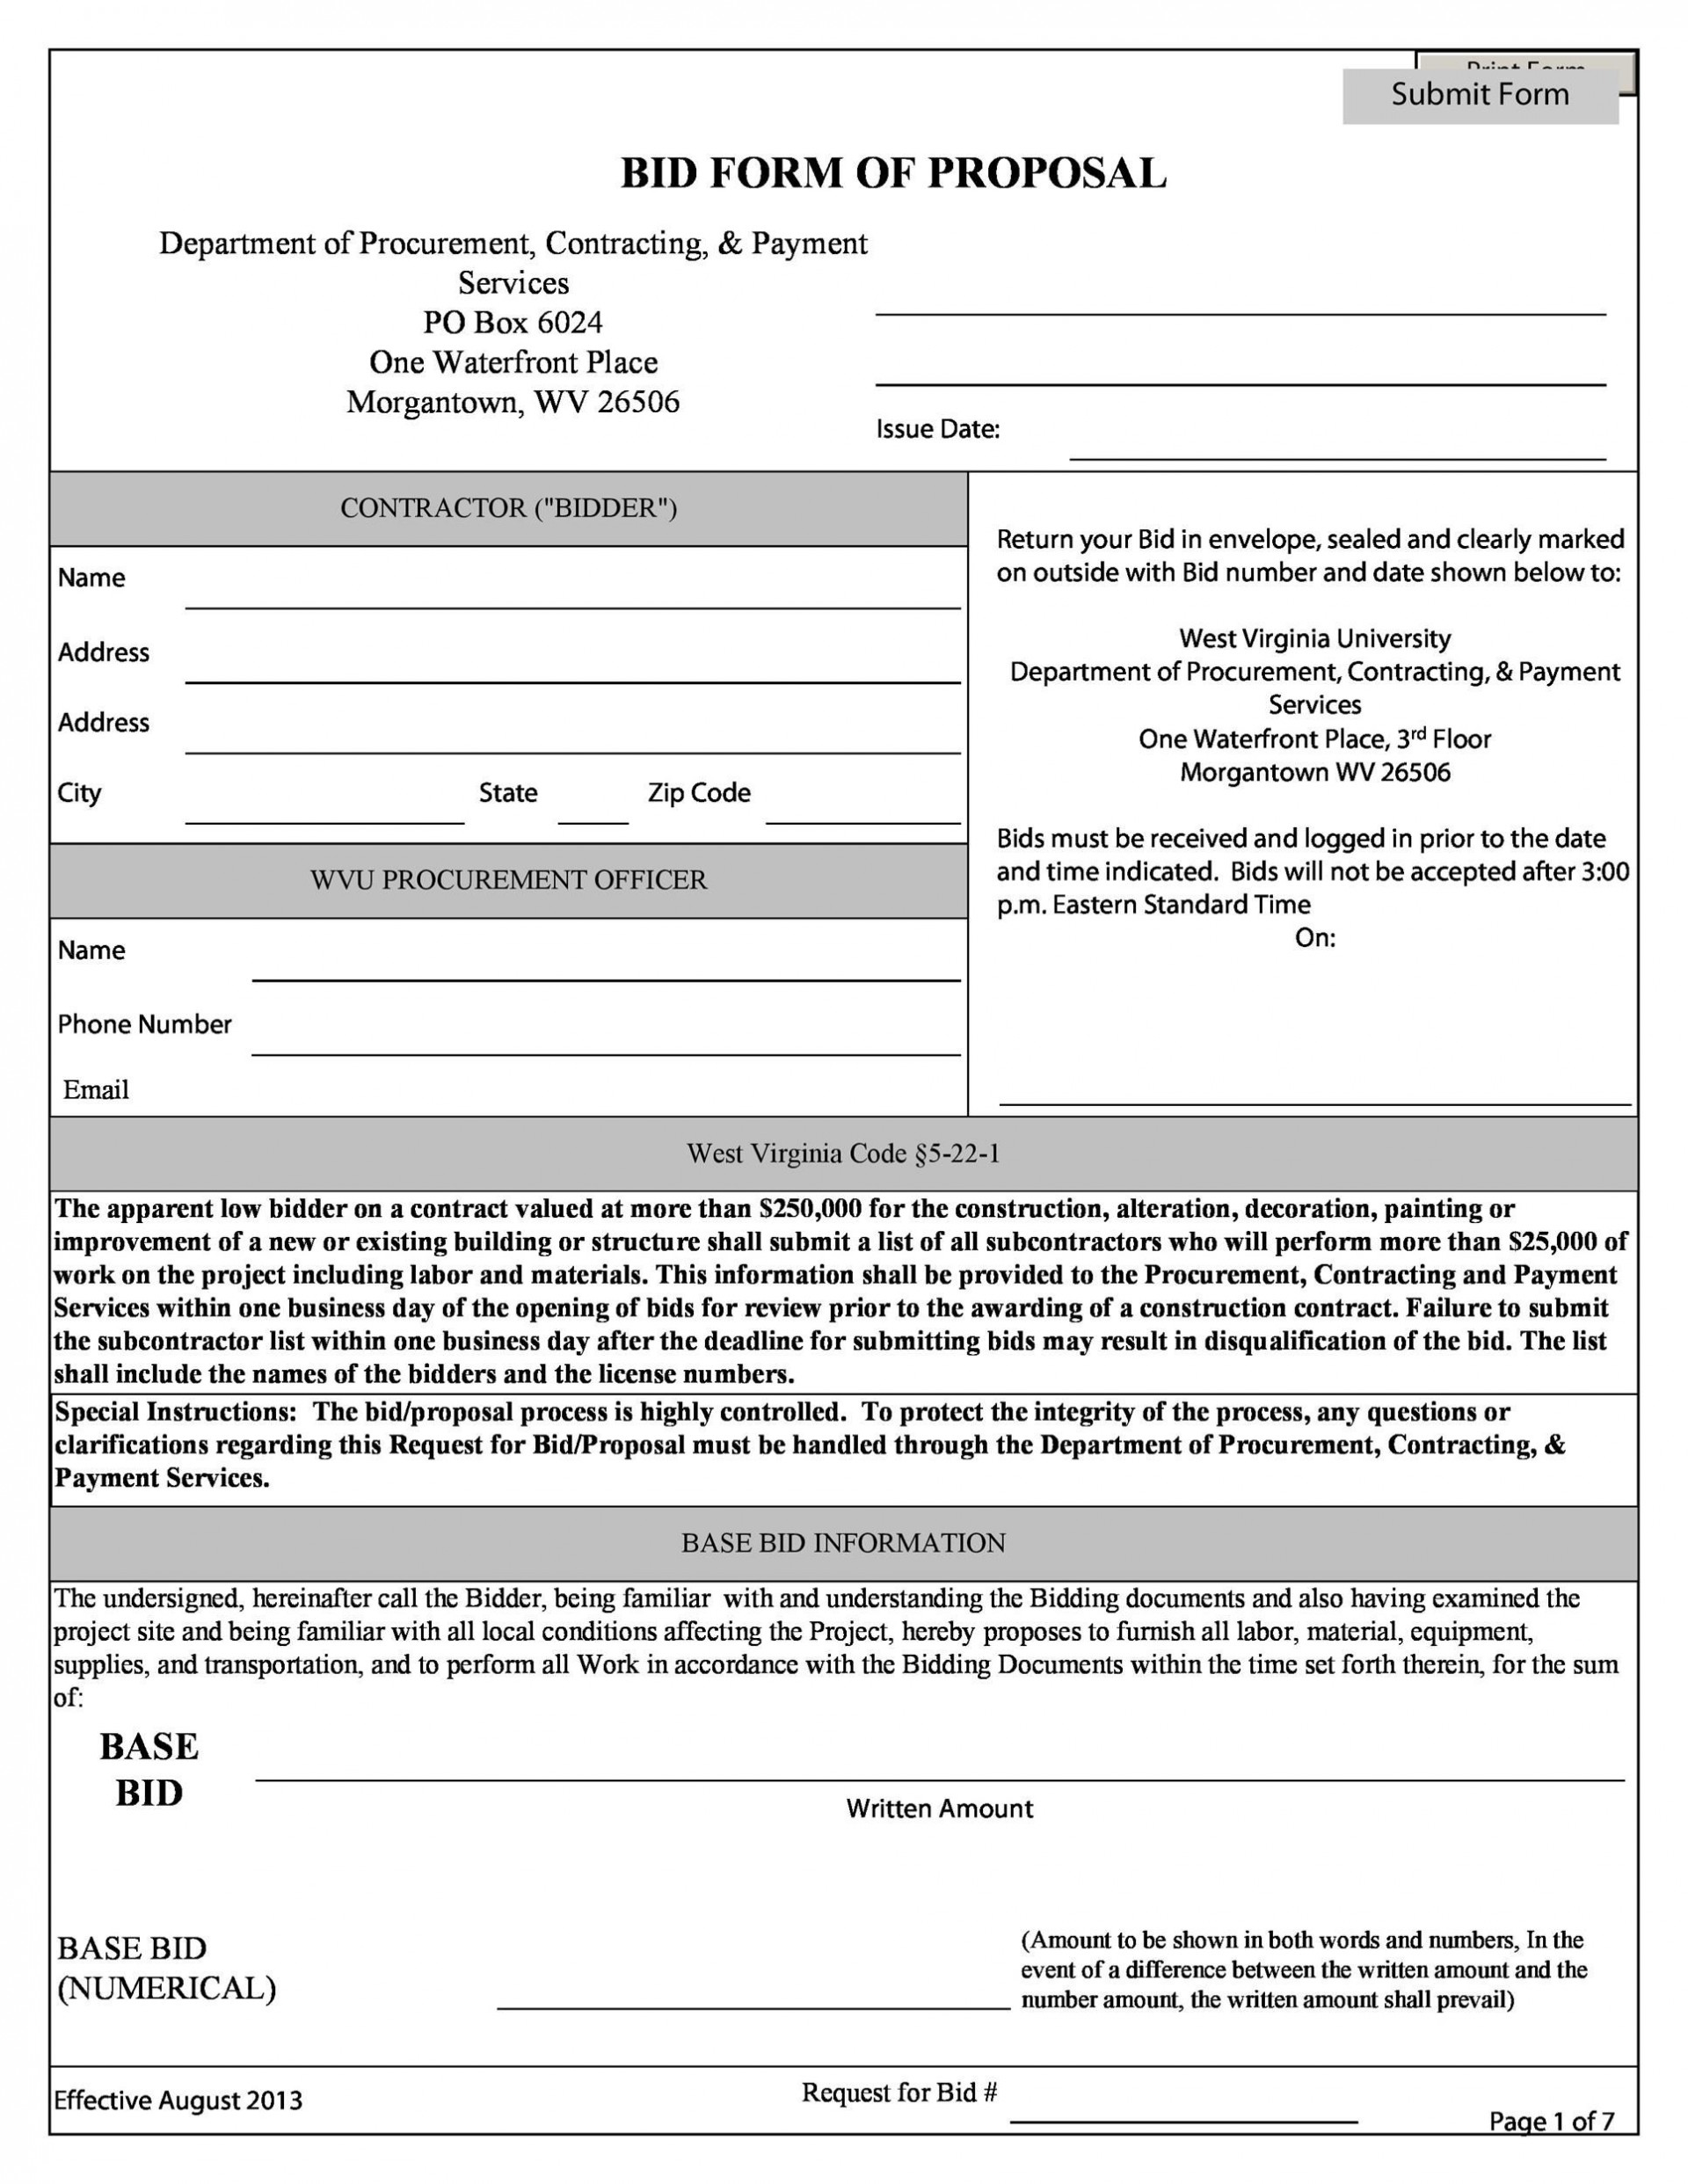 004 Shocking Free Construction Proposal Template Concept  Bid Contractor Word1920